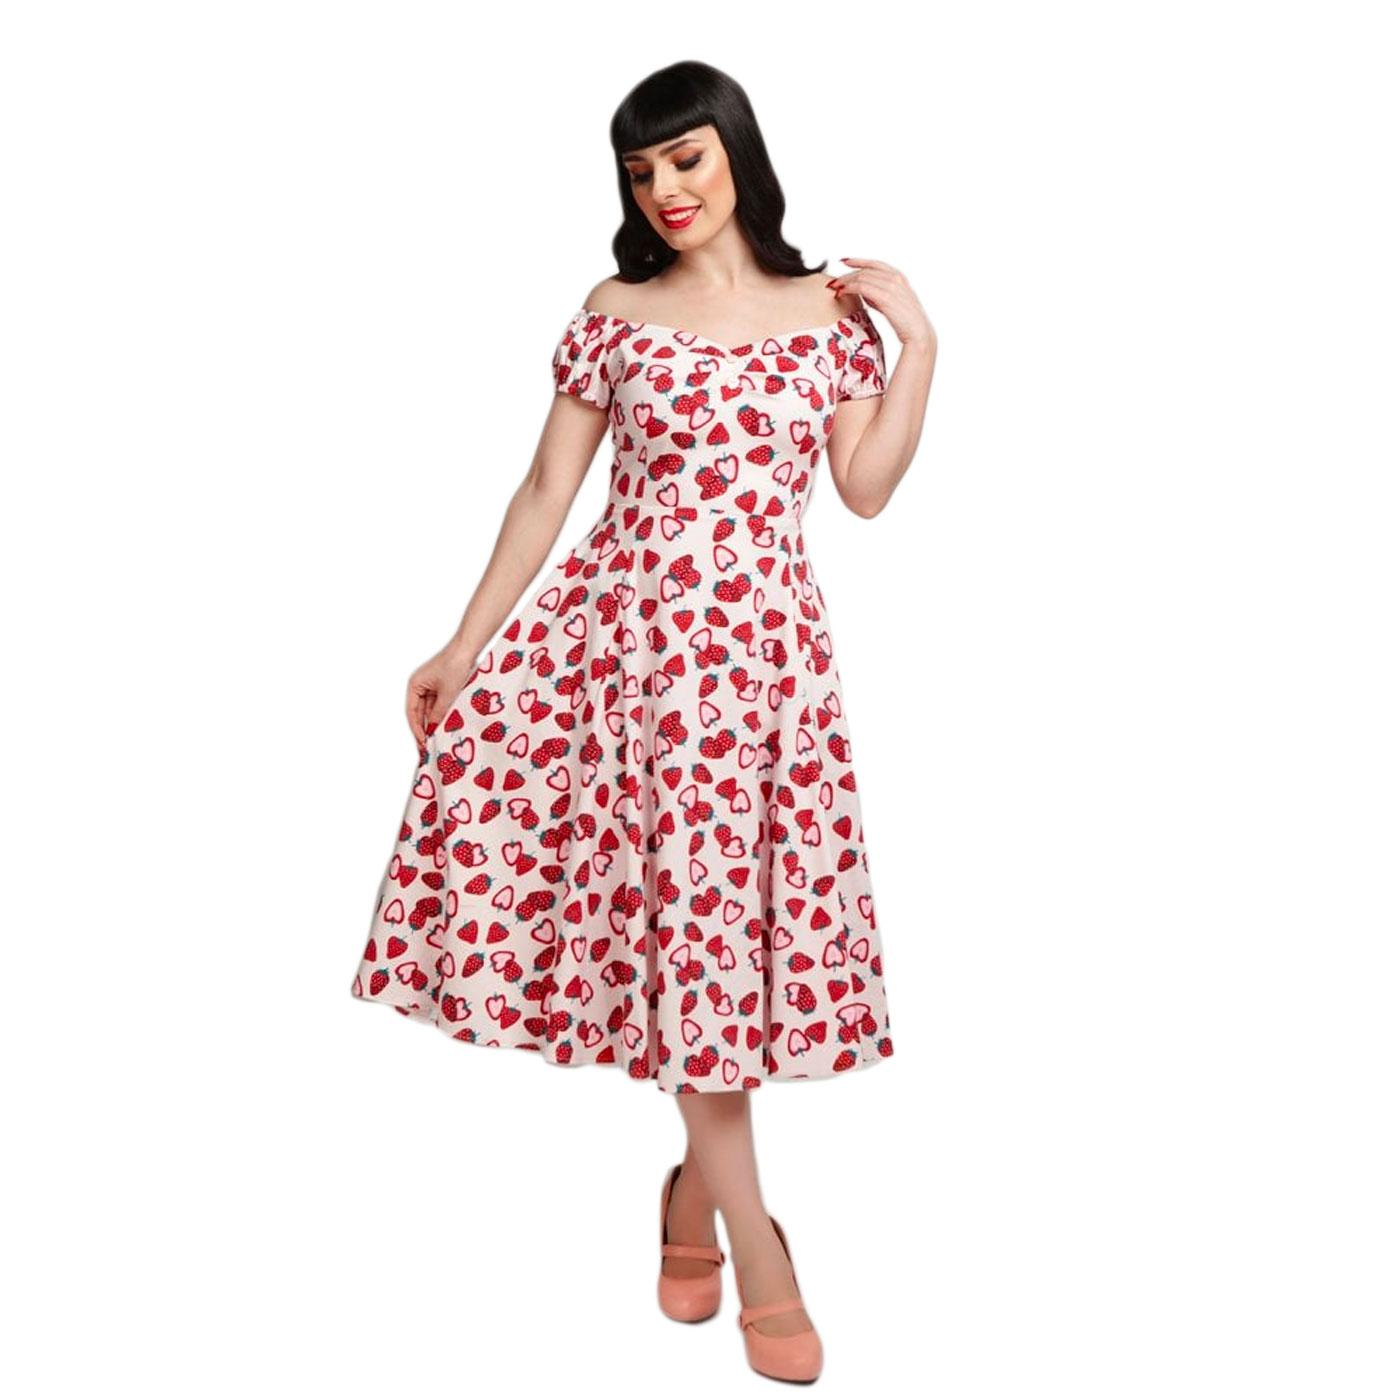 Dolores COLLECTIF Strawberry Print 50s Swing Dress